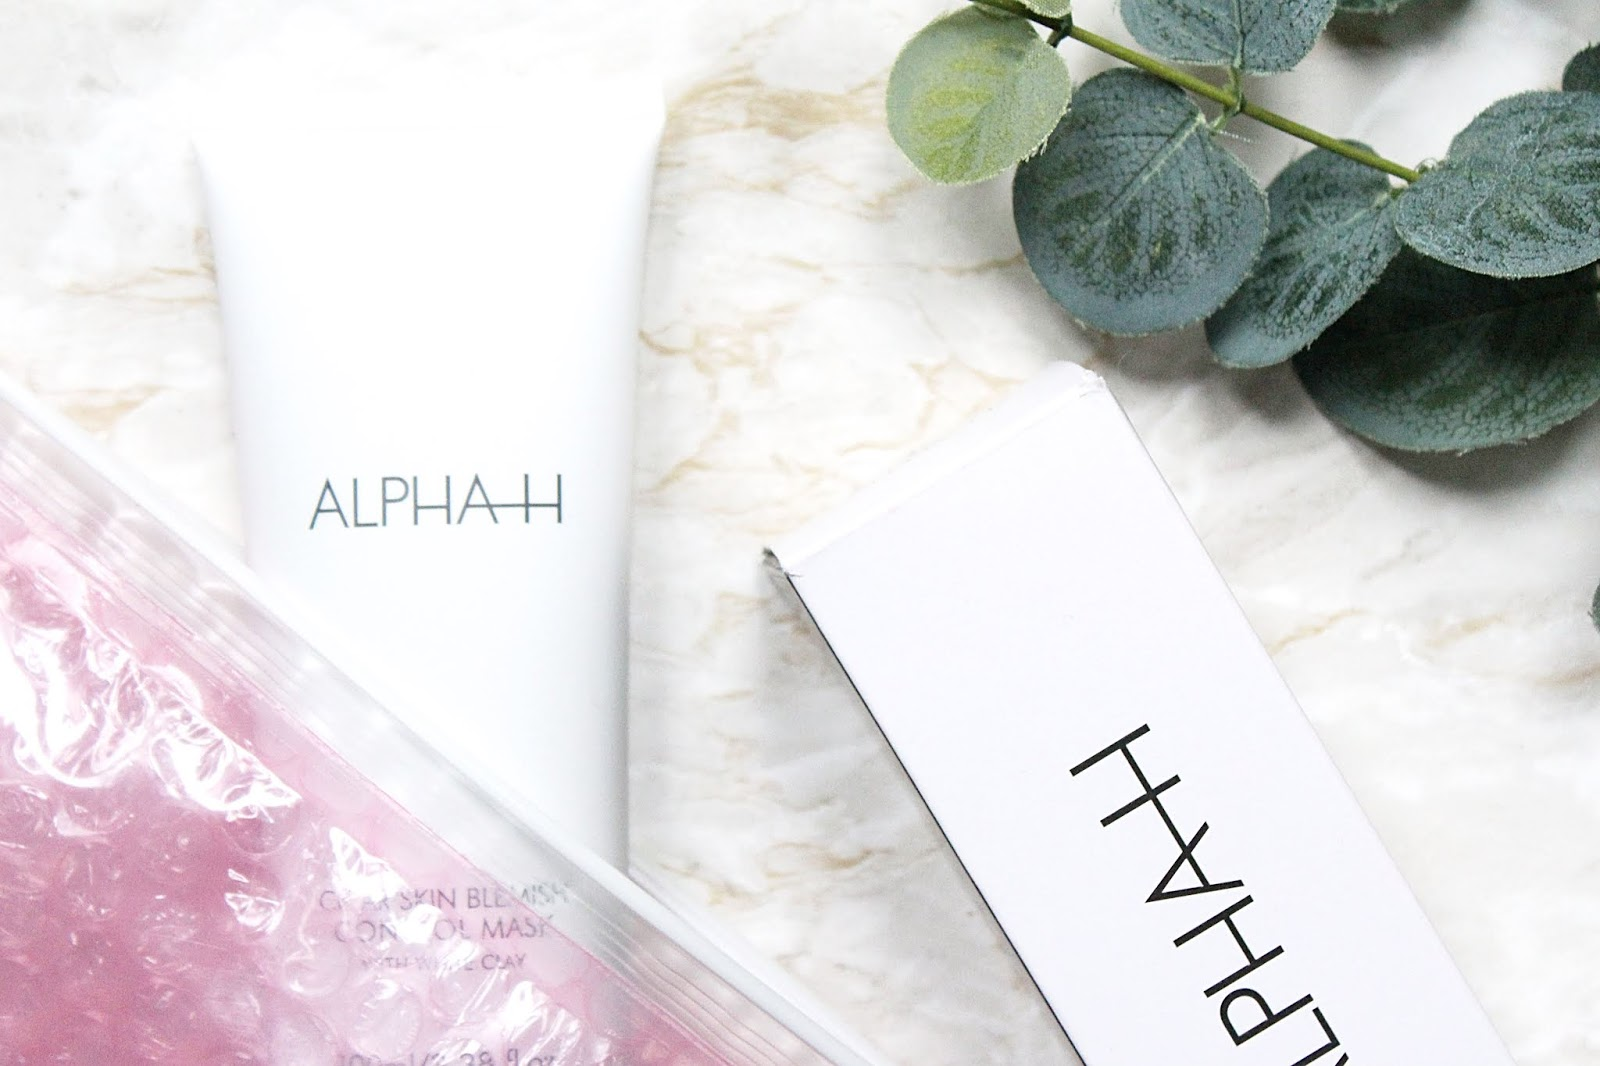 Alpha-H Clear Skin Blemish Control Face Mask